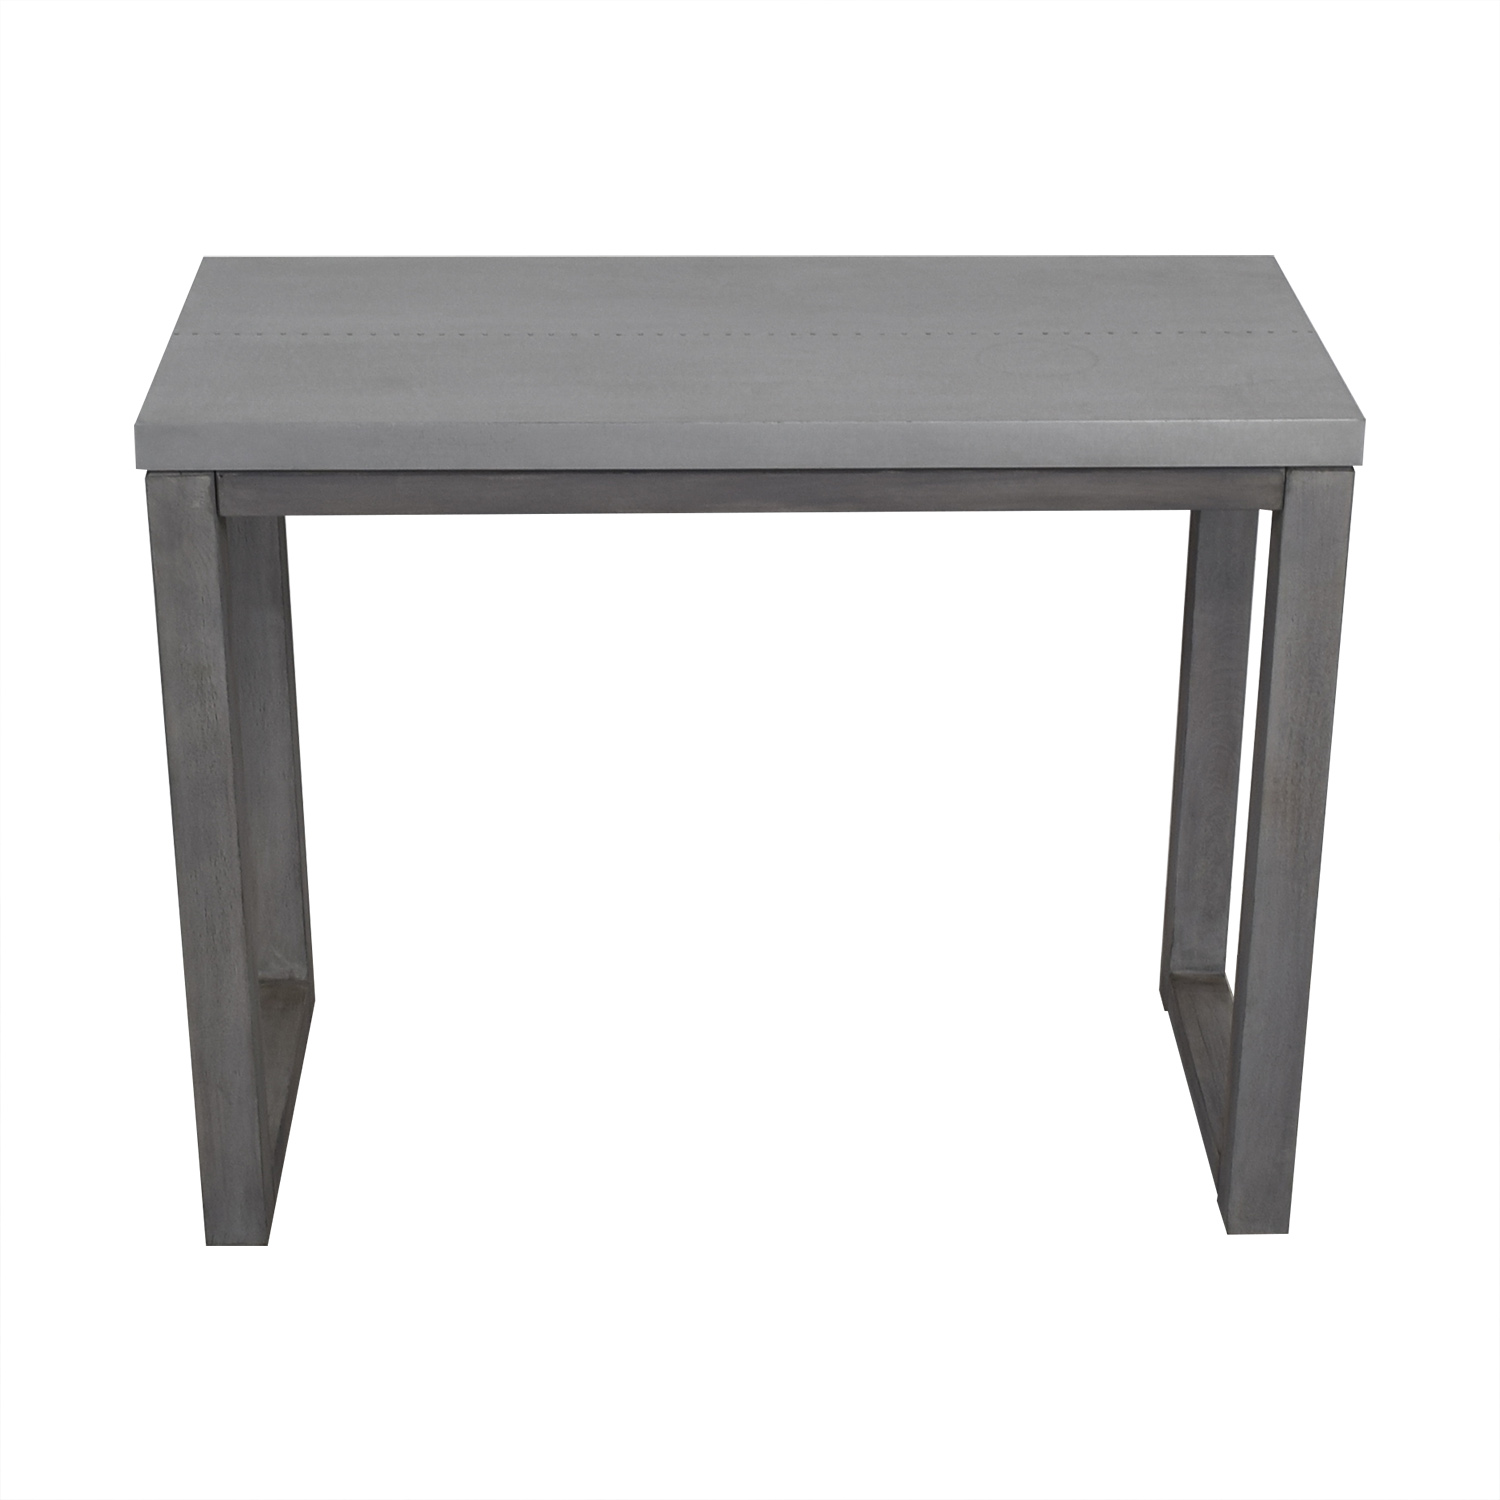 CB2 CB2 Stern Counter Table price